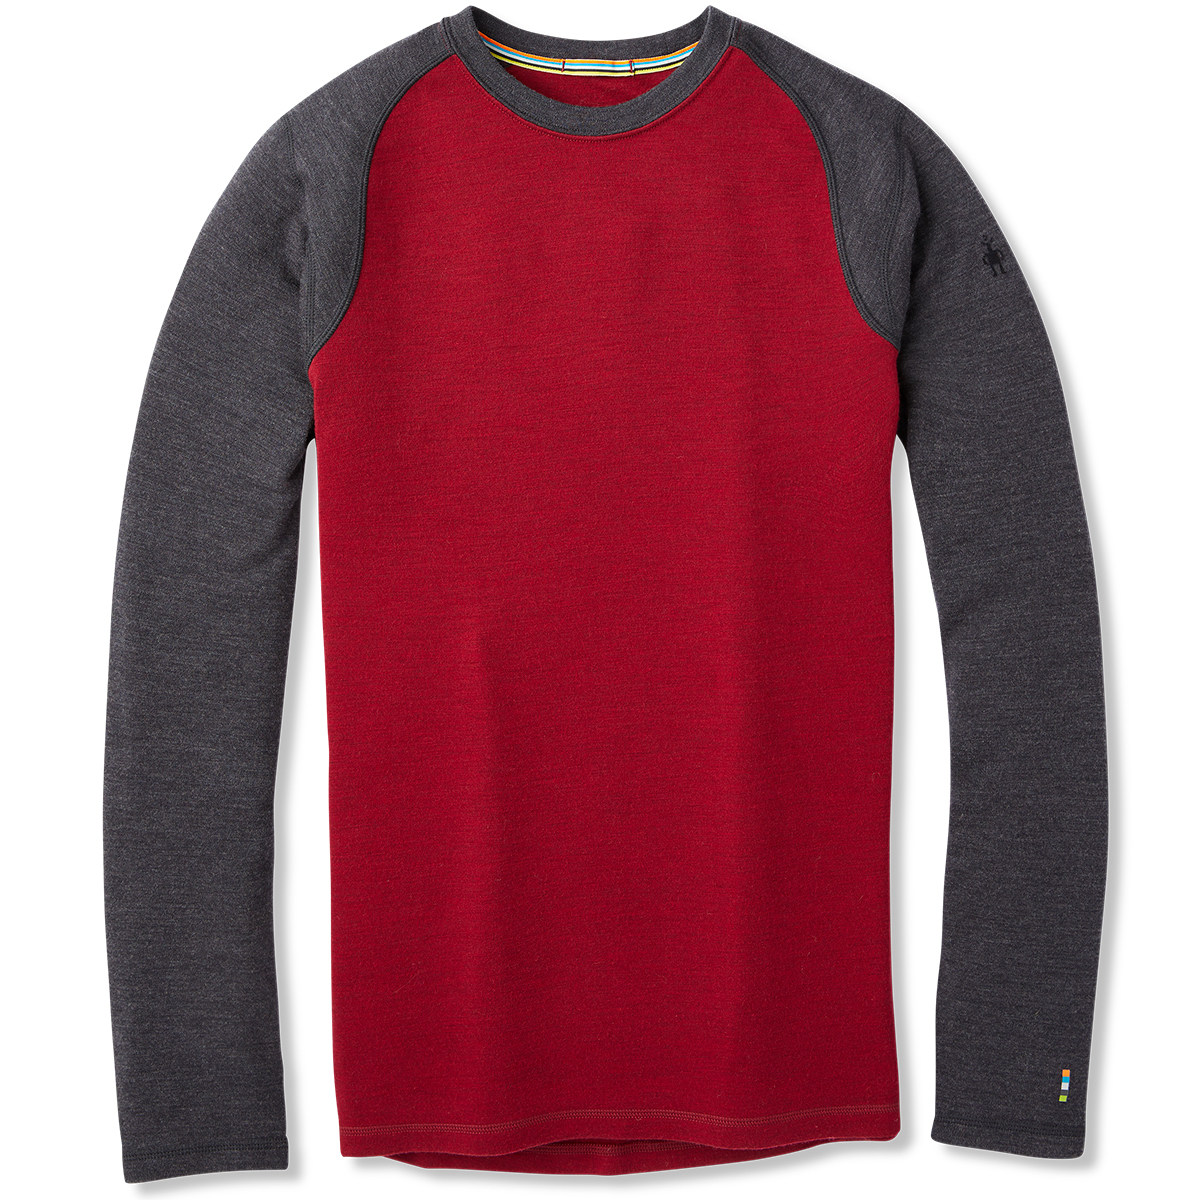 Smartwool Men's Nts Mid 250 Crew - Red, M